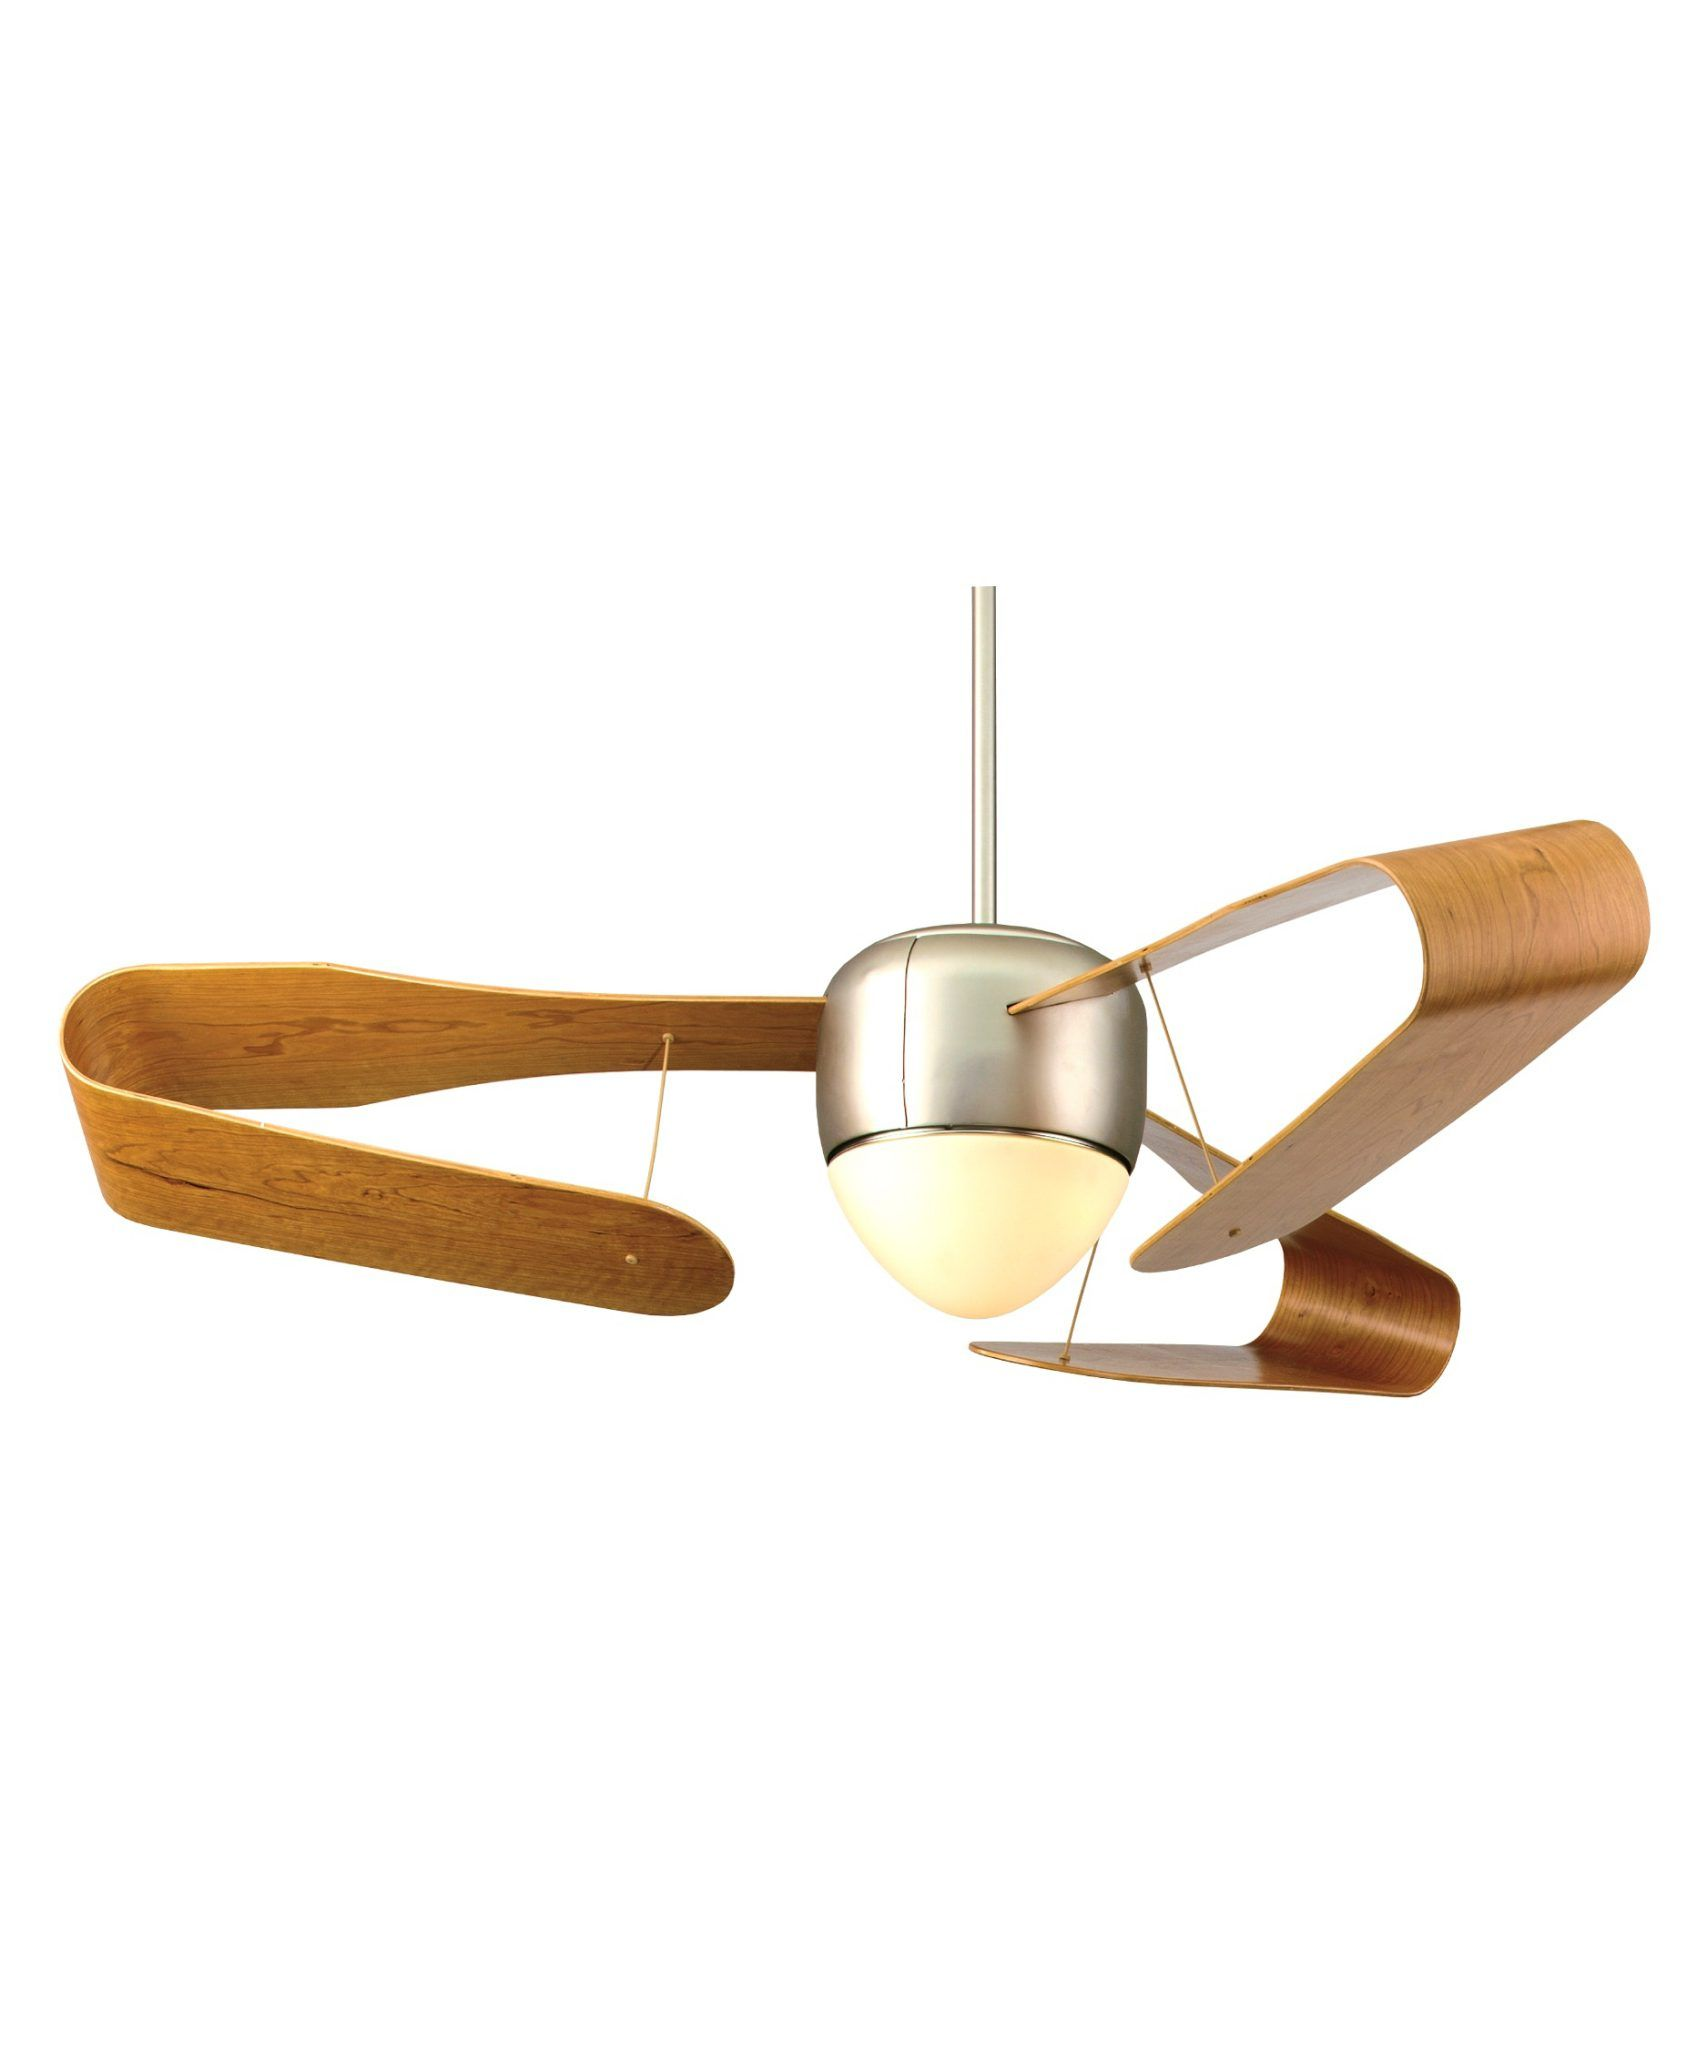 100 Most Unusual Ceiling Fans 2018 Interior Decorating Colors Ceiling Fan Unique Ceiling Fans Ceiling Fan With Light